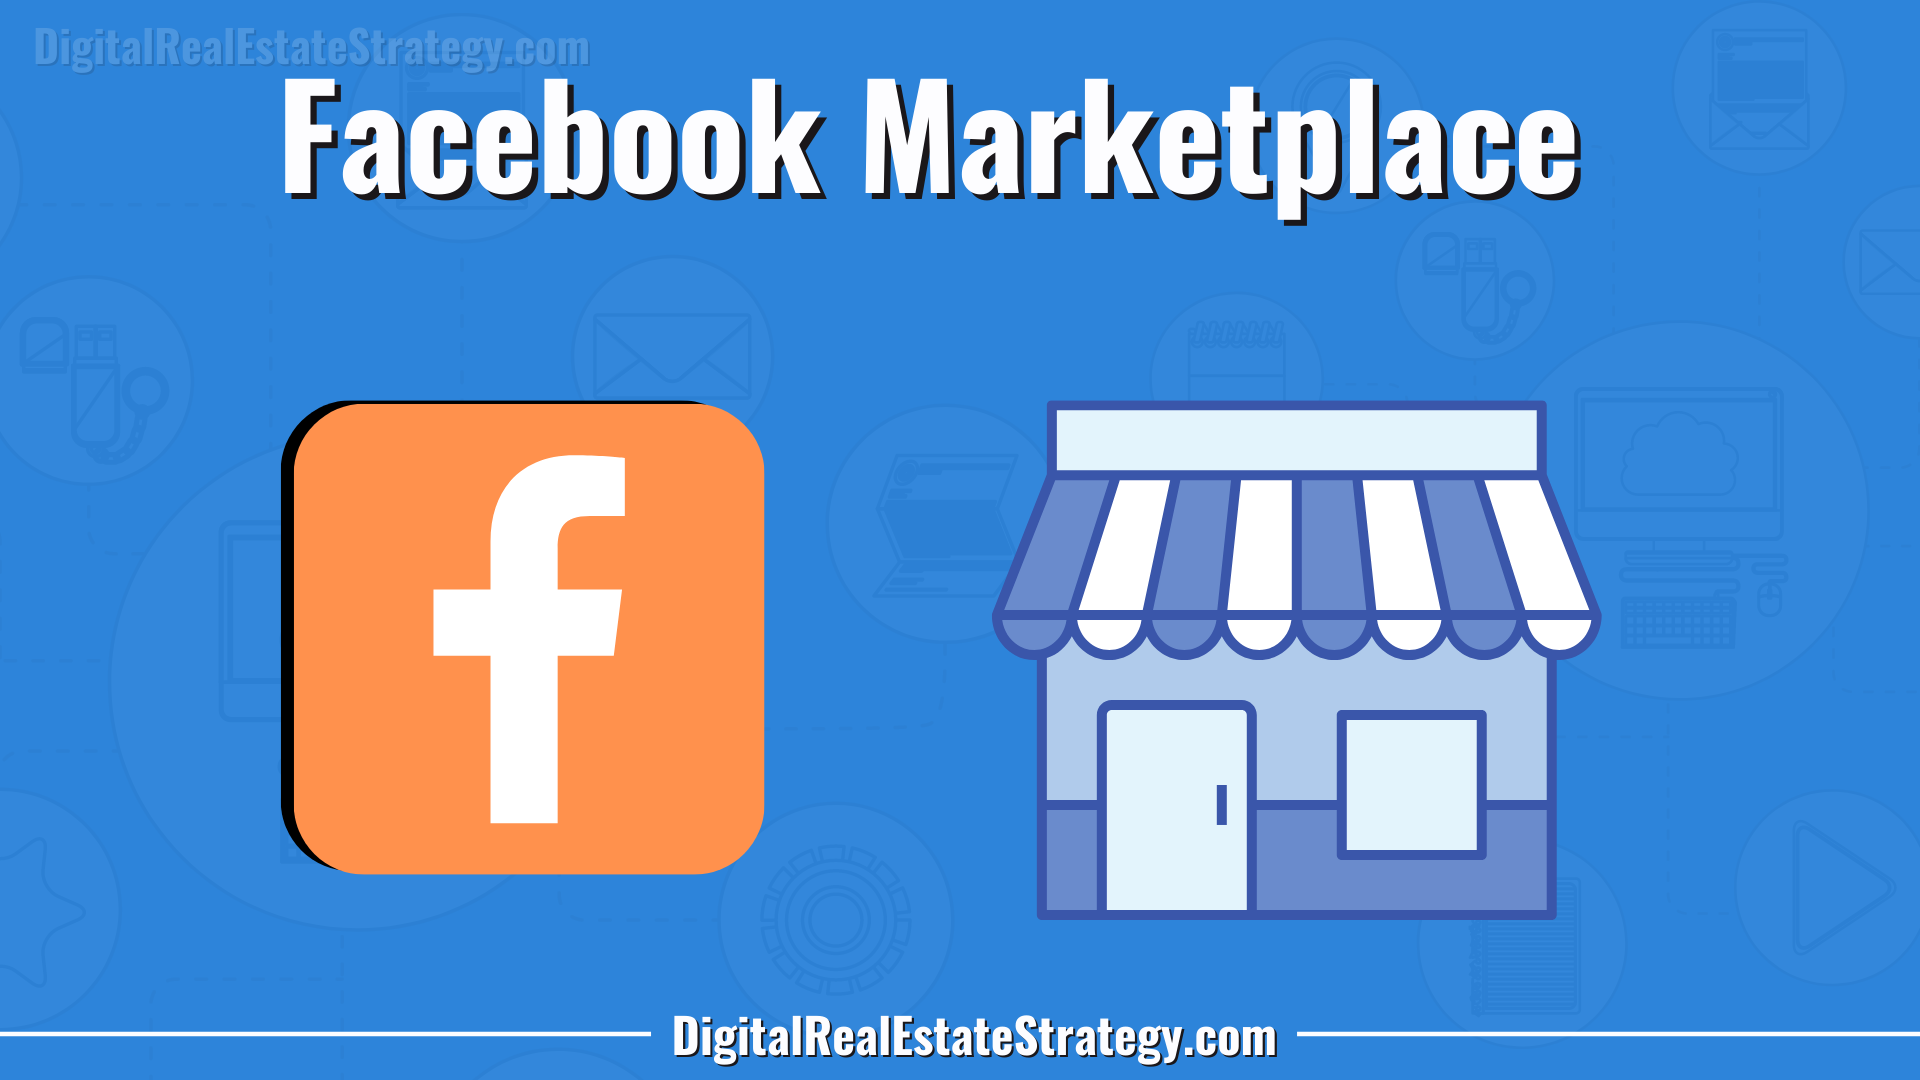 Jerome Lewis Generate Leads For Your Business Online Sell Online Stuff Memberships Subscriptions Affiliate Marketing Digital Real Estate Strategy Using Facebook Marketplace